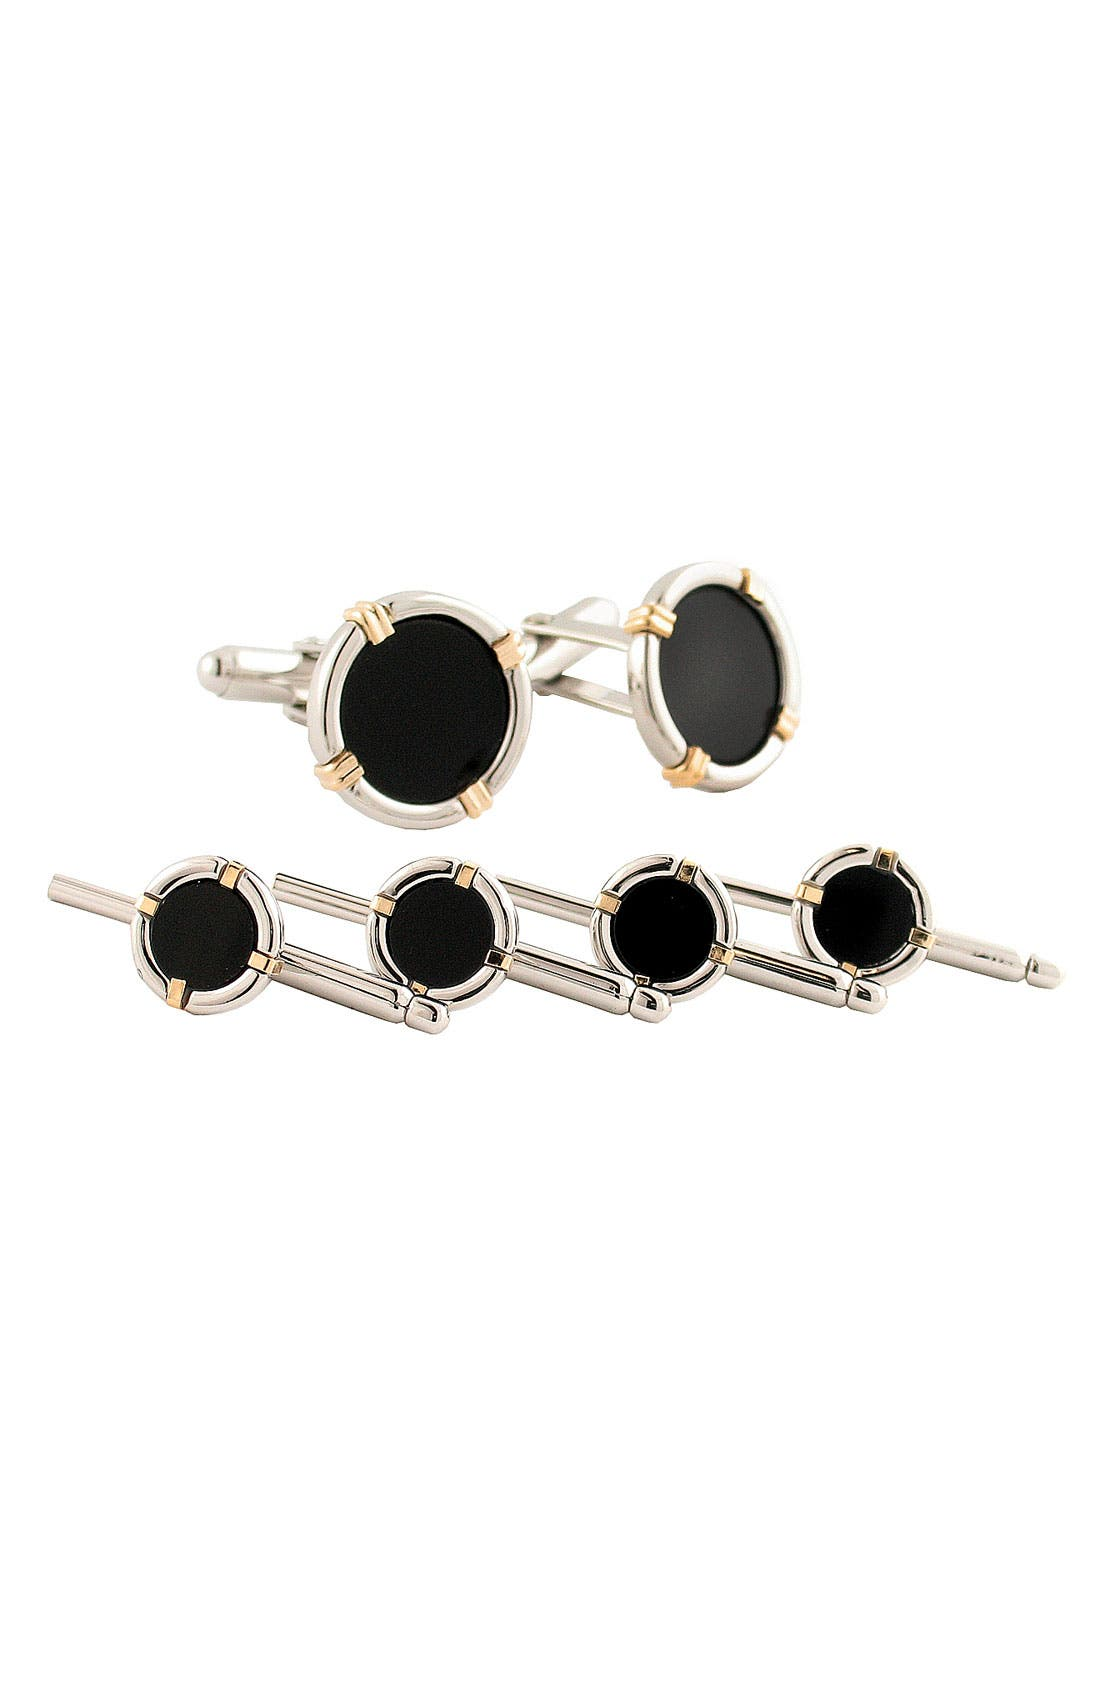 Inlaid Sterling Silver Cuff Link & Stud Set,                             Main thumbnail 1, color,                             040